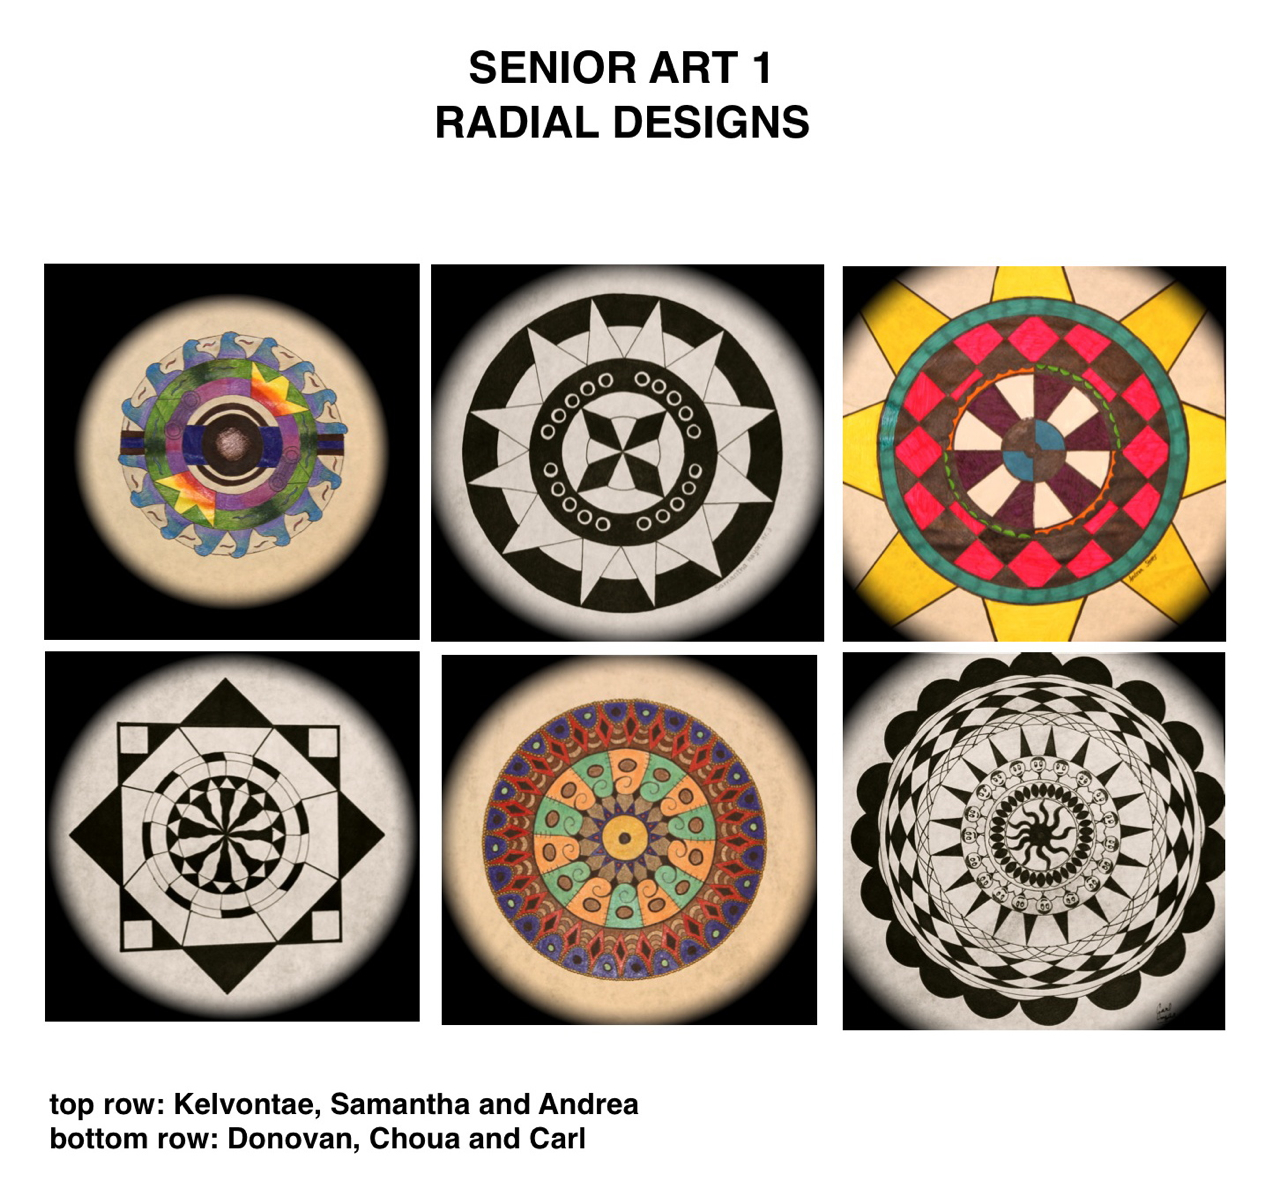 Radial Design Art : Senior art radial designs